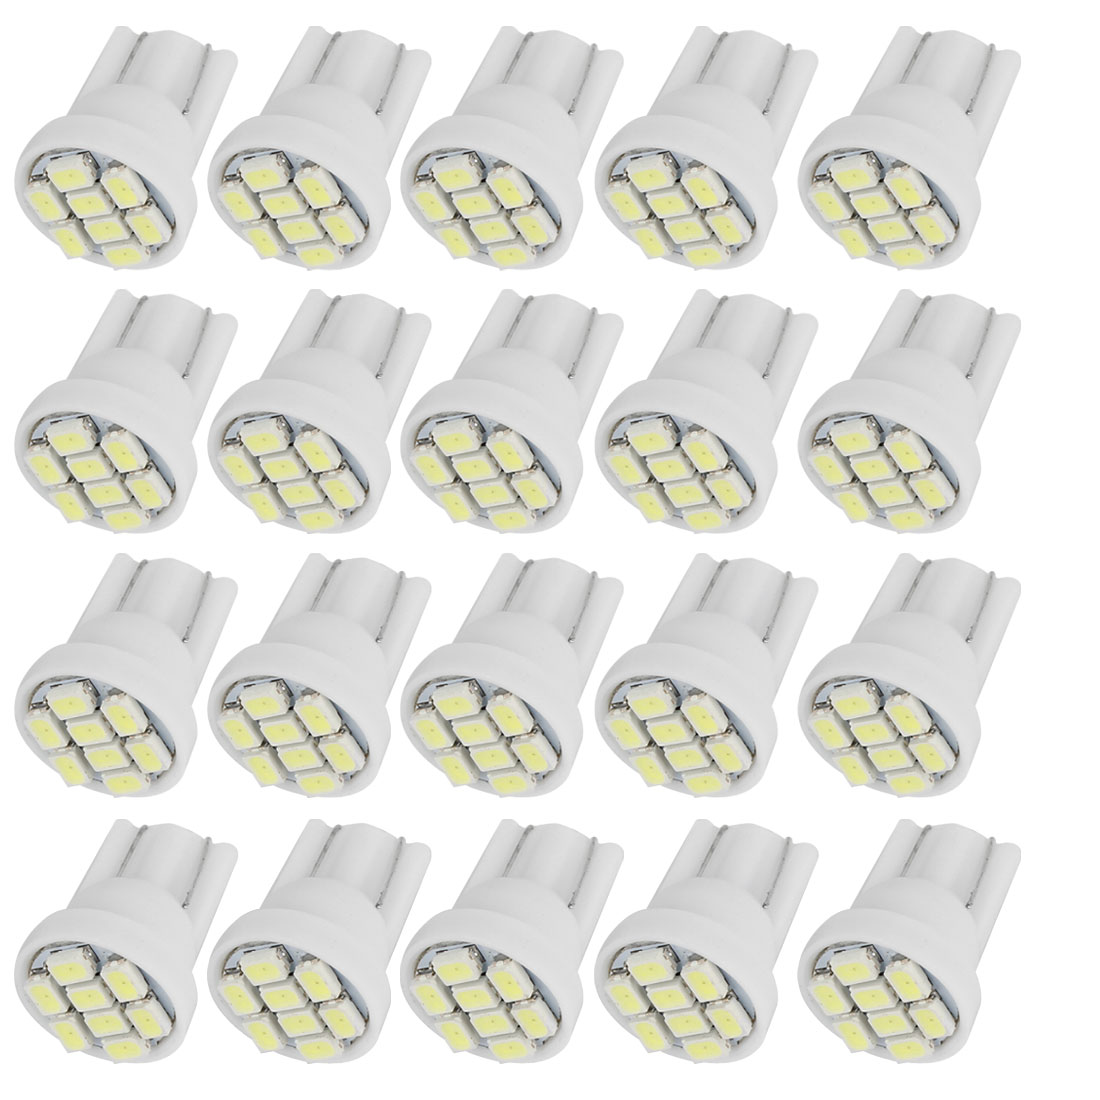 20 Pcs T10 White 1210 8-SMD LED Dashboard Wedge Light Bulbs 12V for Car internal